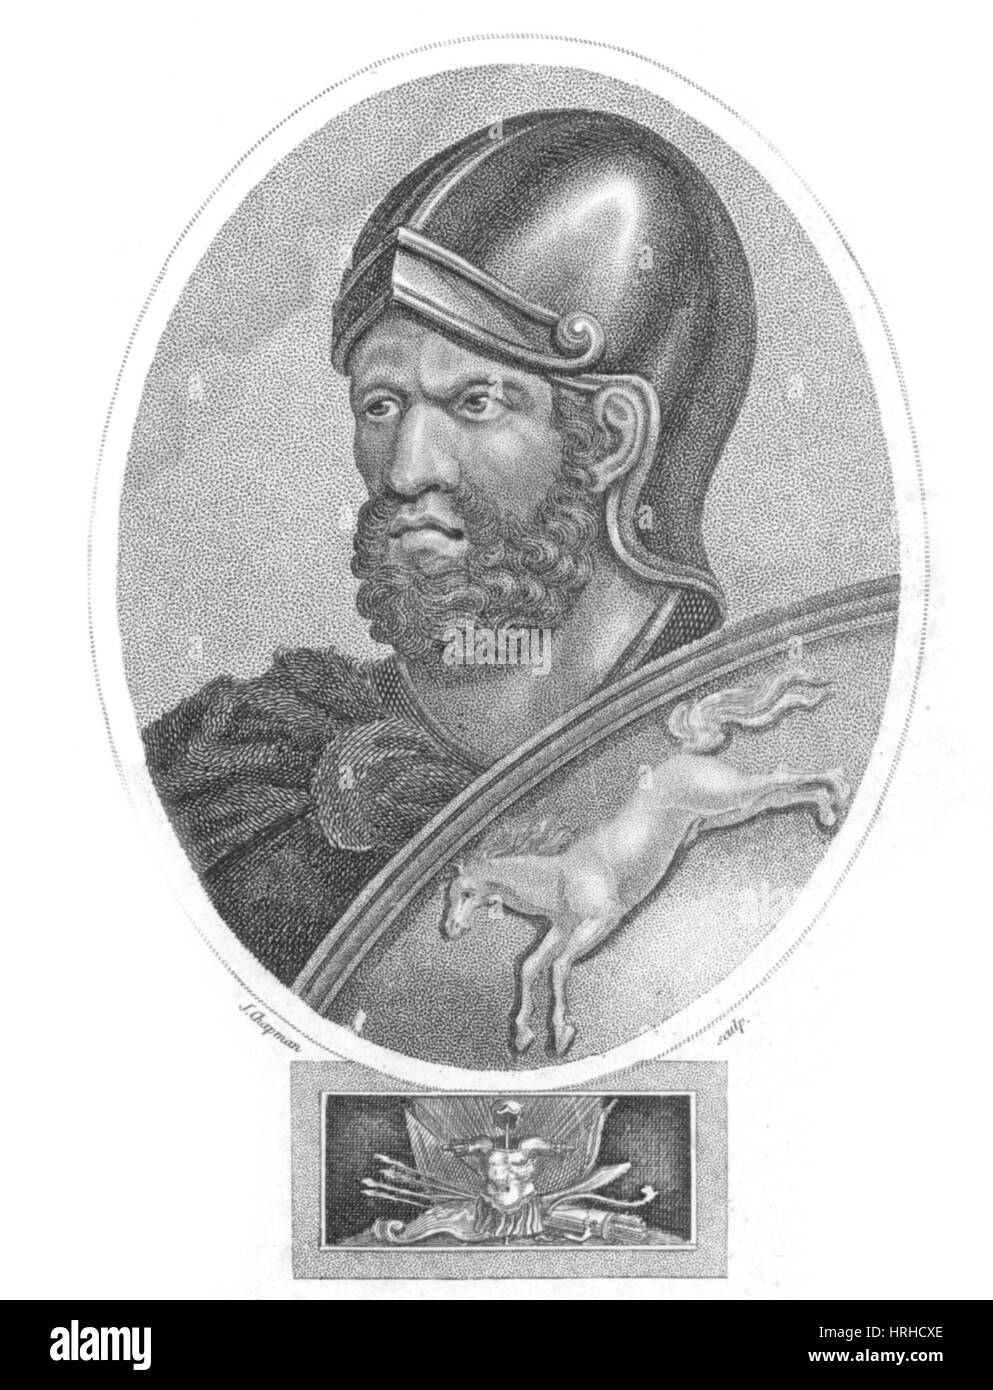 Hannibal, Carthaginian Military Commander - Stock Image